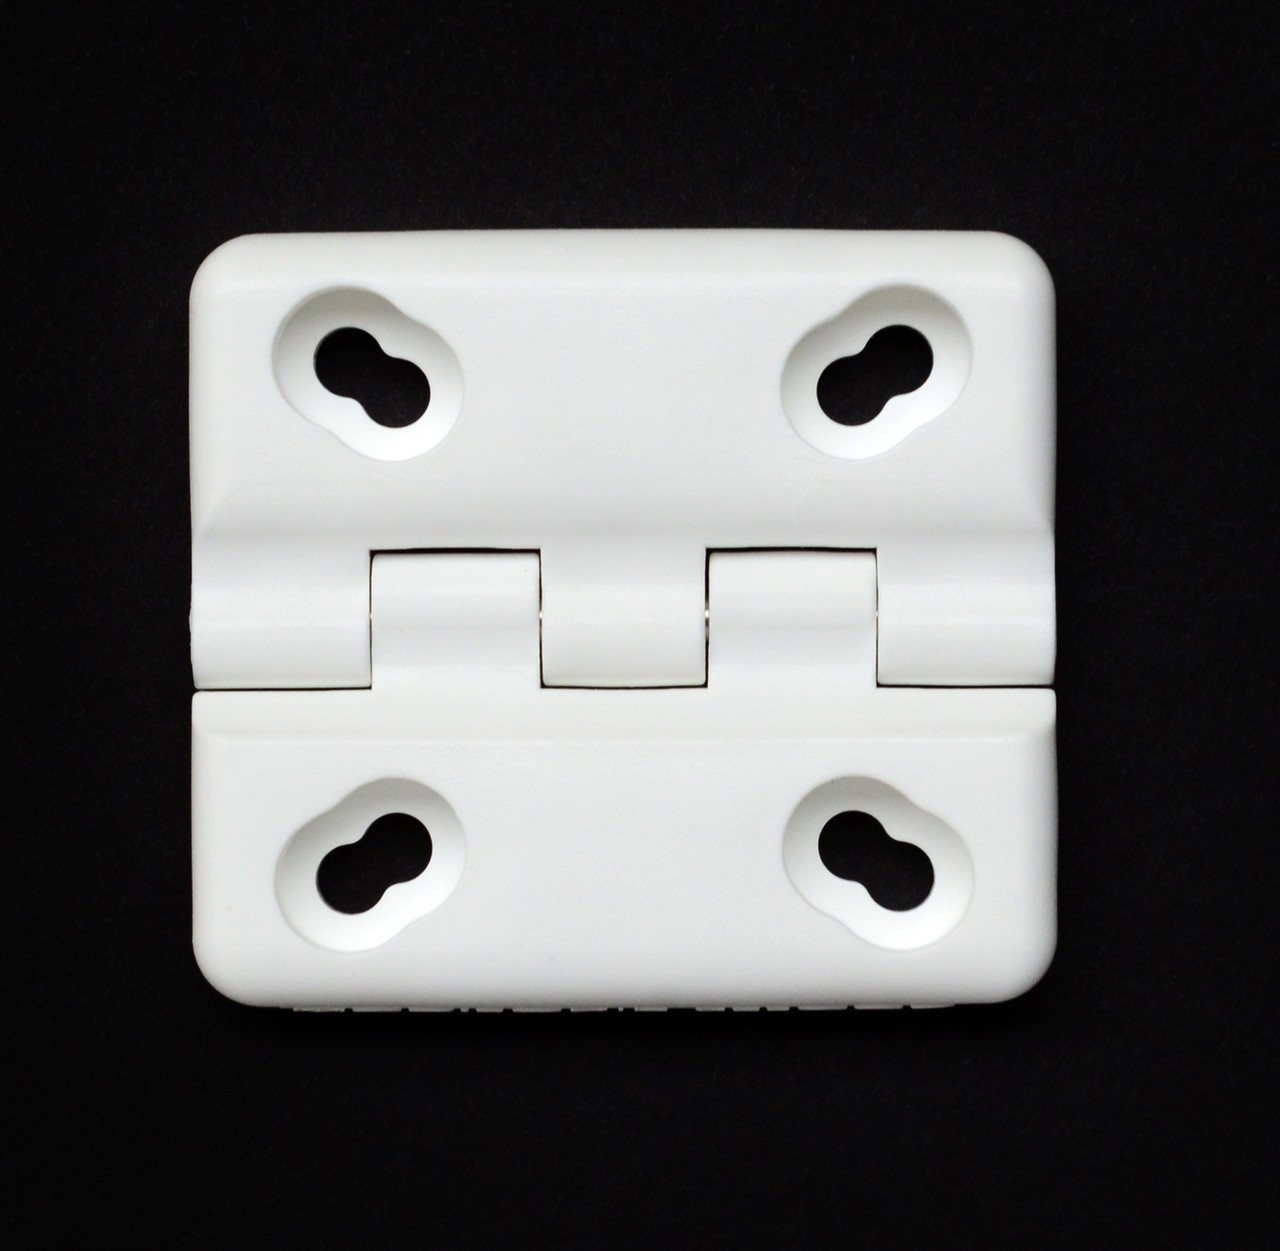 Cooler Shield Hinges.  Replacement hinges for Rubbermaid Coolers.